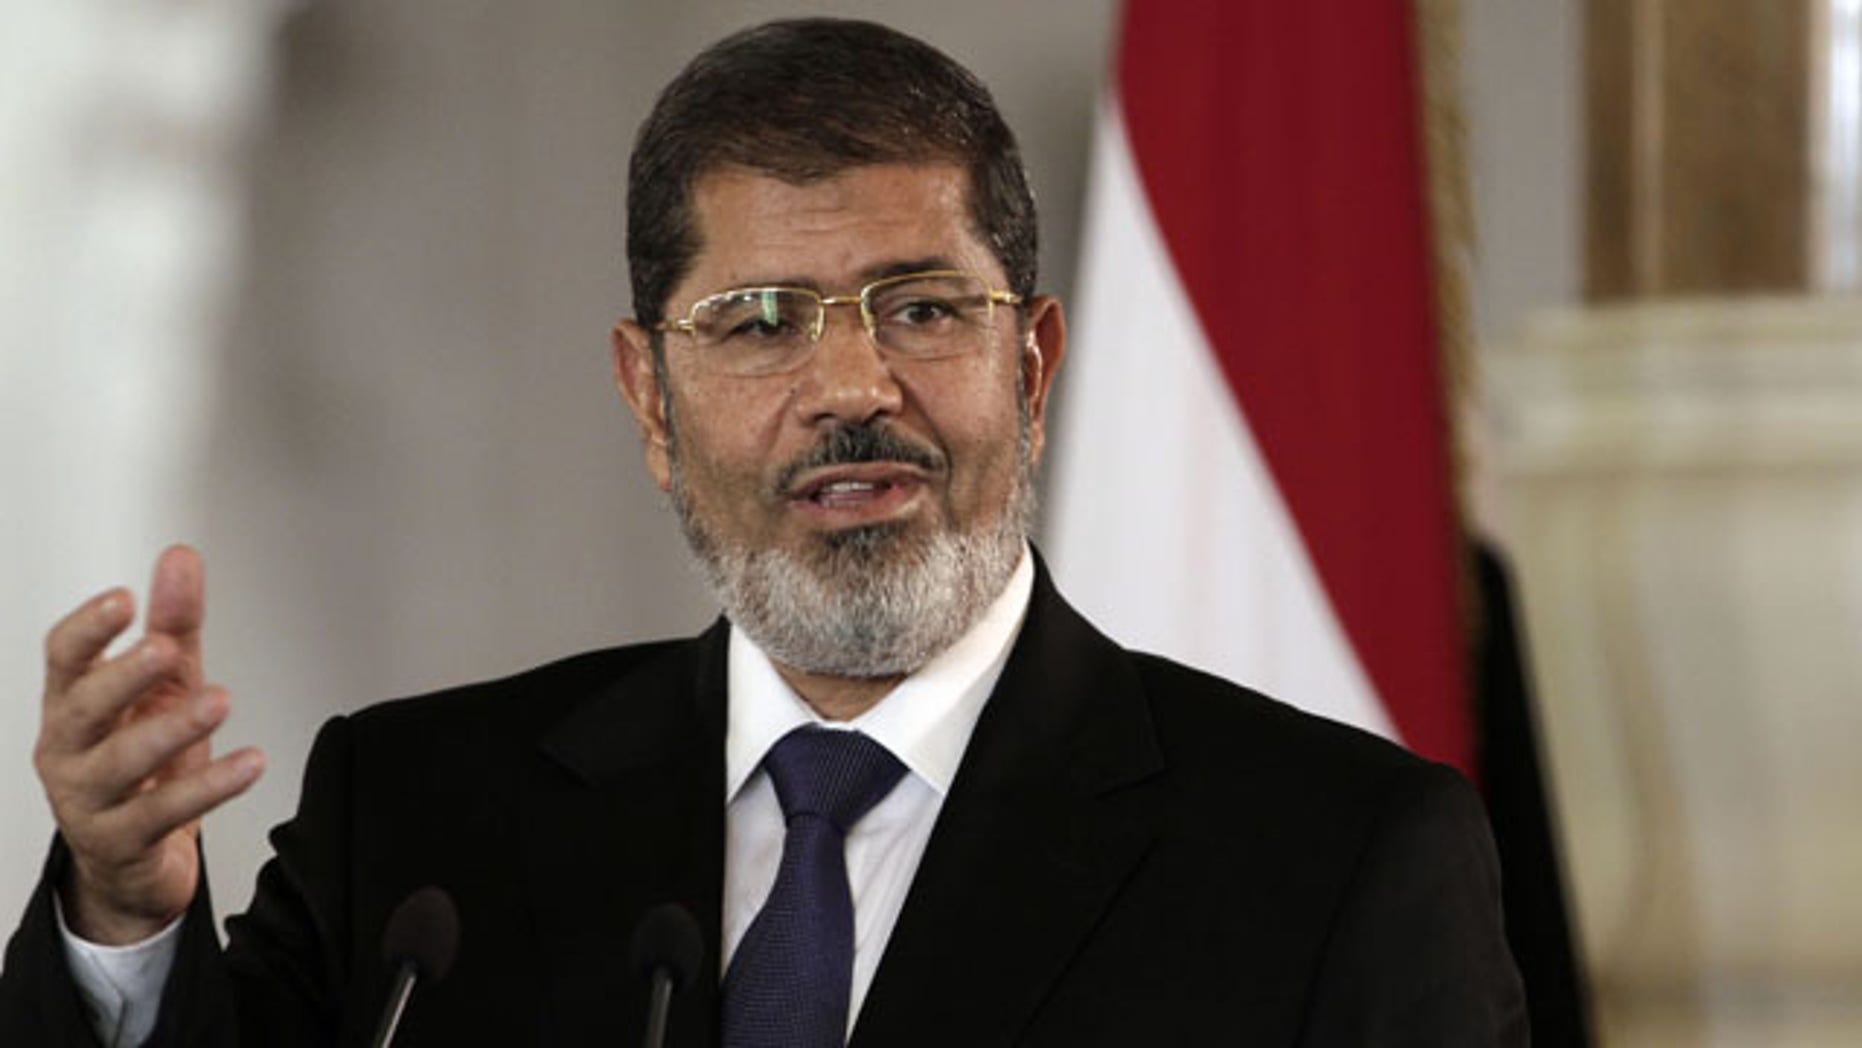 FILE - In this July 13, 2012 file photo, then Egyptian President Mohammed Morsi speaks to reporters at the presidential palace in Cairo. (AP)